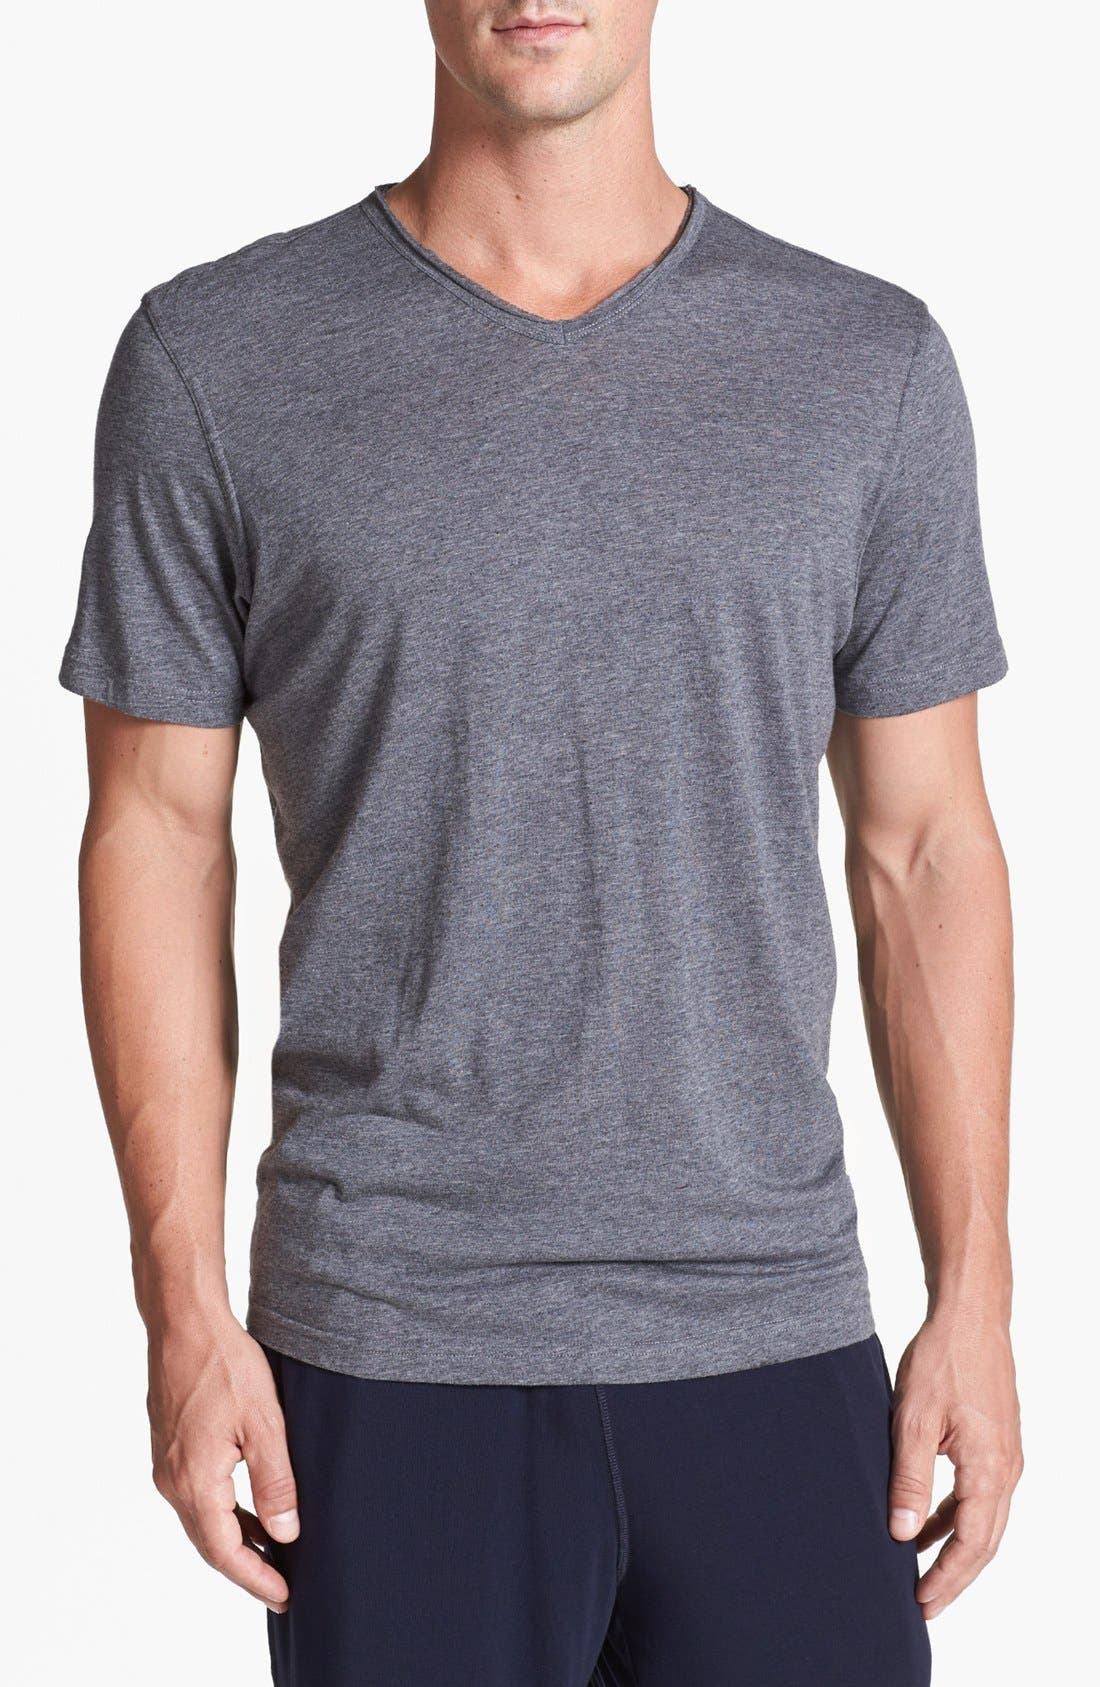 Main Image - Daniel Buchler Cotton Blend V-Neck T-Shirt